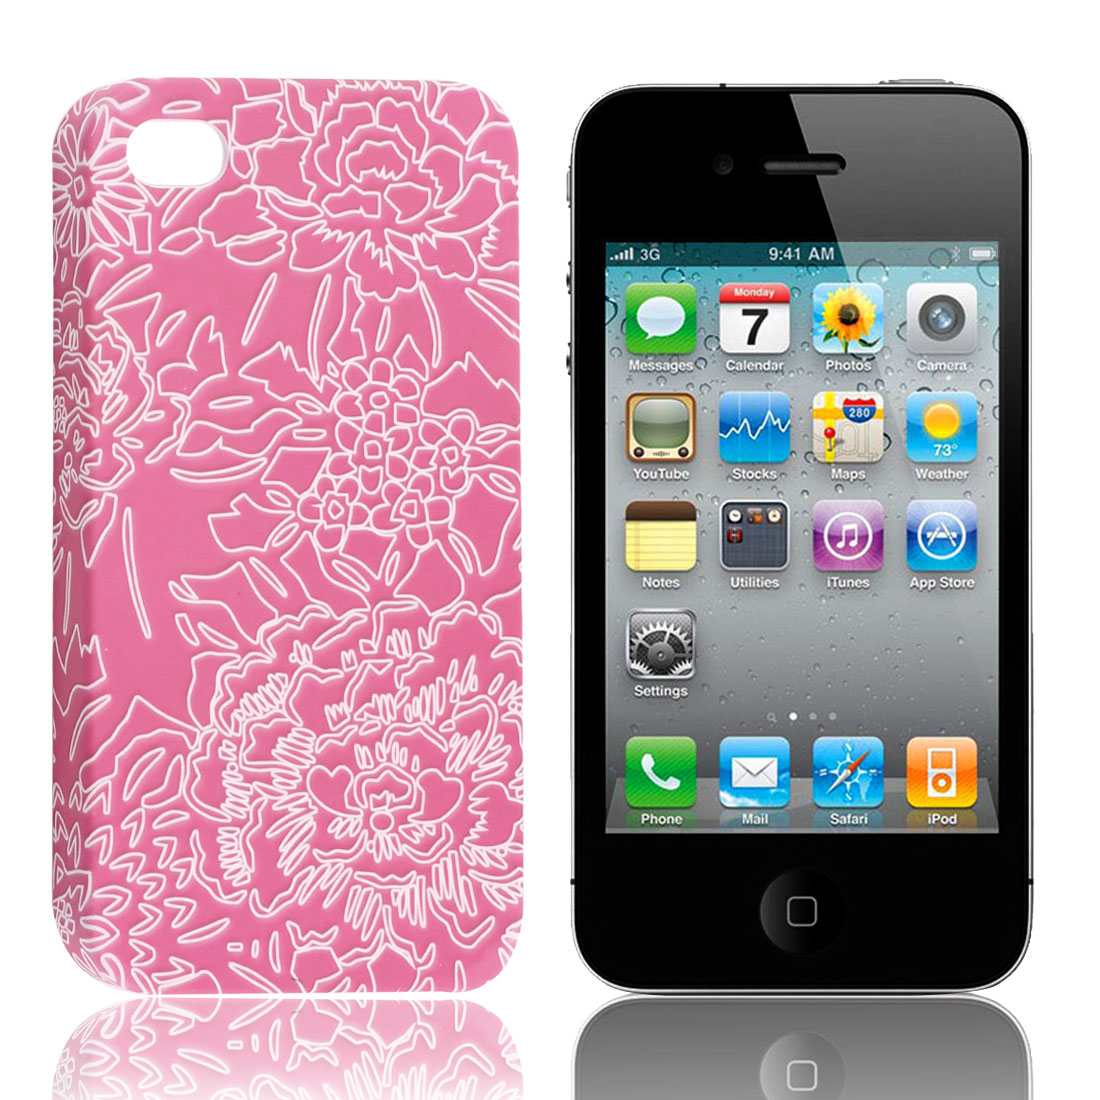 Fuchsia White Flowers Phone Hard Back Case Cover for iPhone 4 4G 4S 4GS